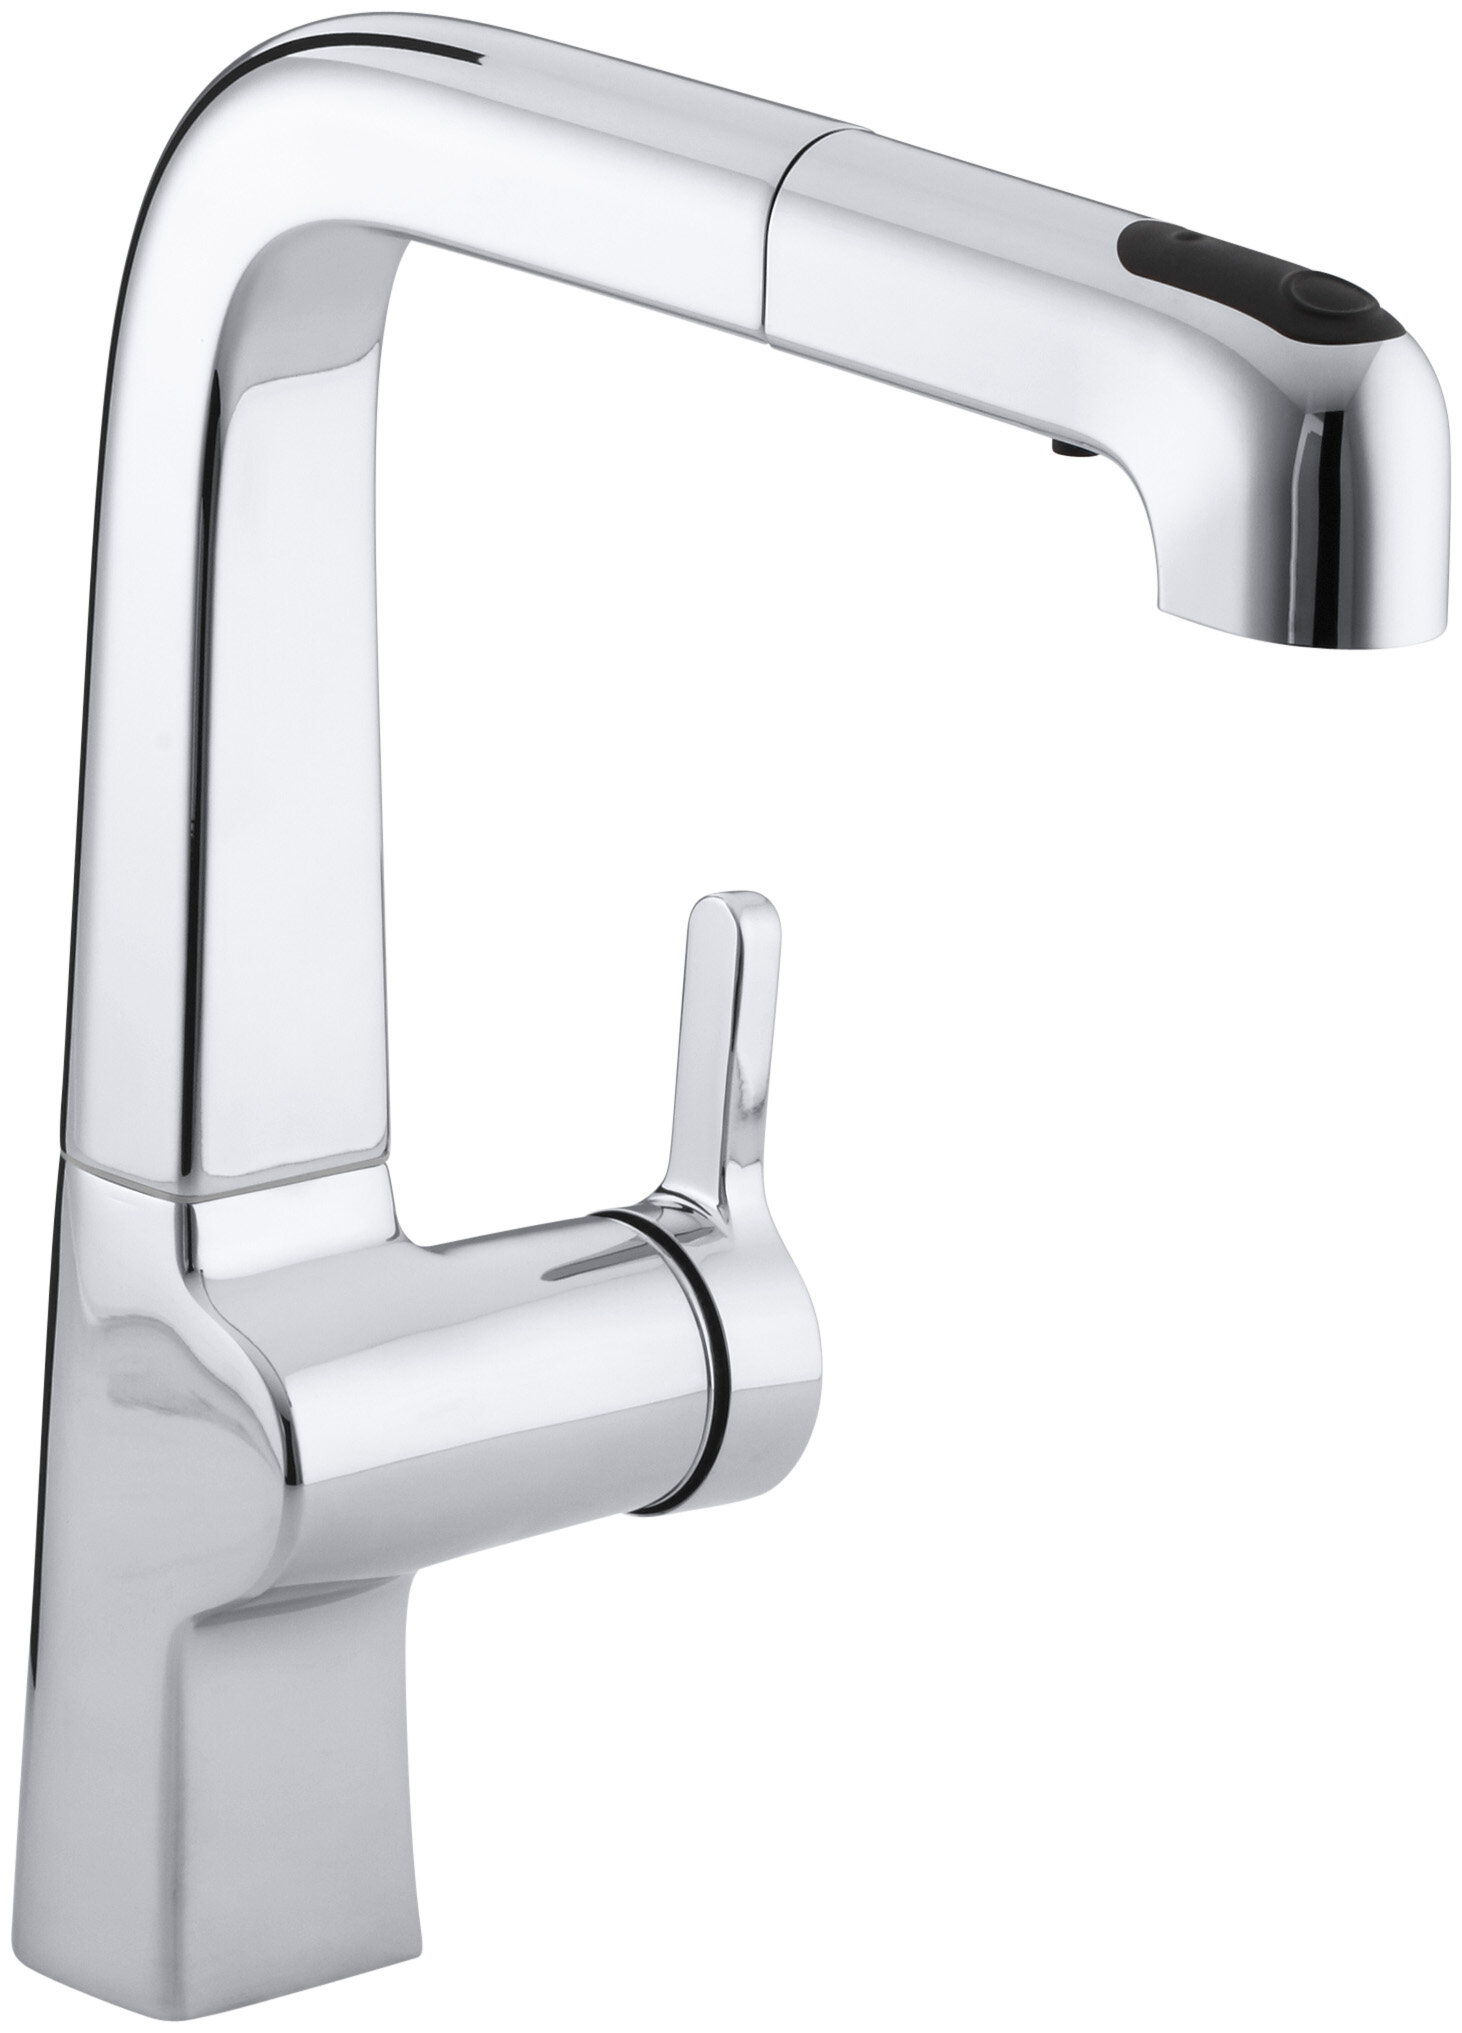 K 6331 CP VS Kohler Evoke Single Hole Kitchen Sink Faucet with 9